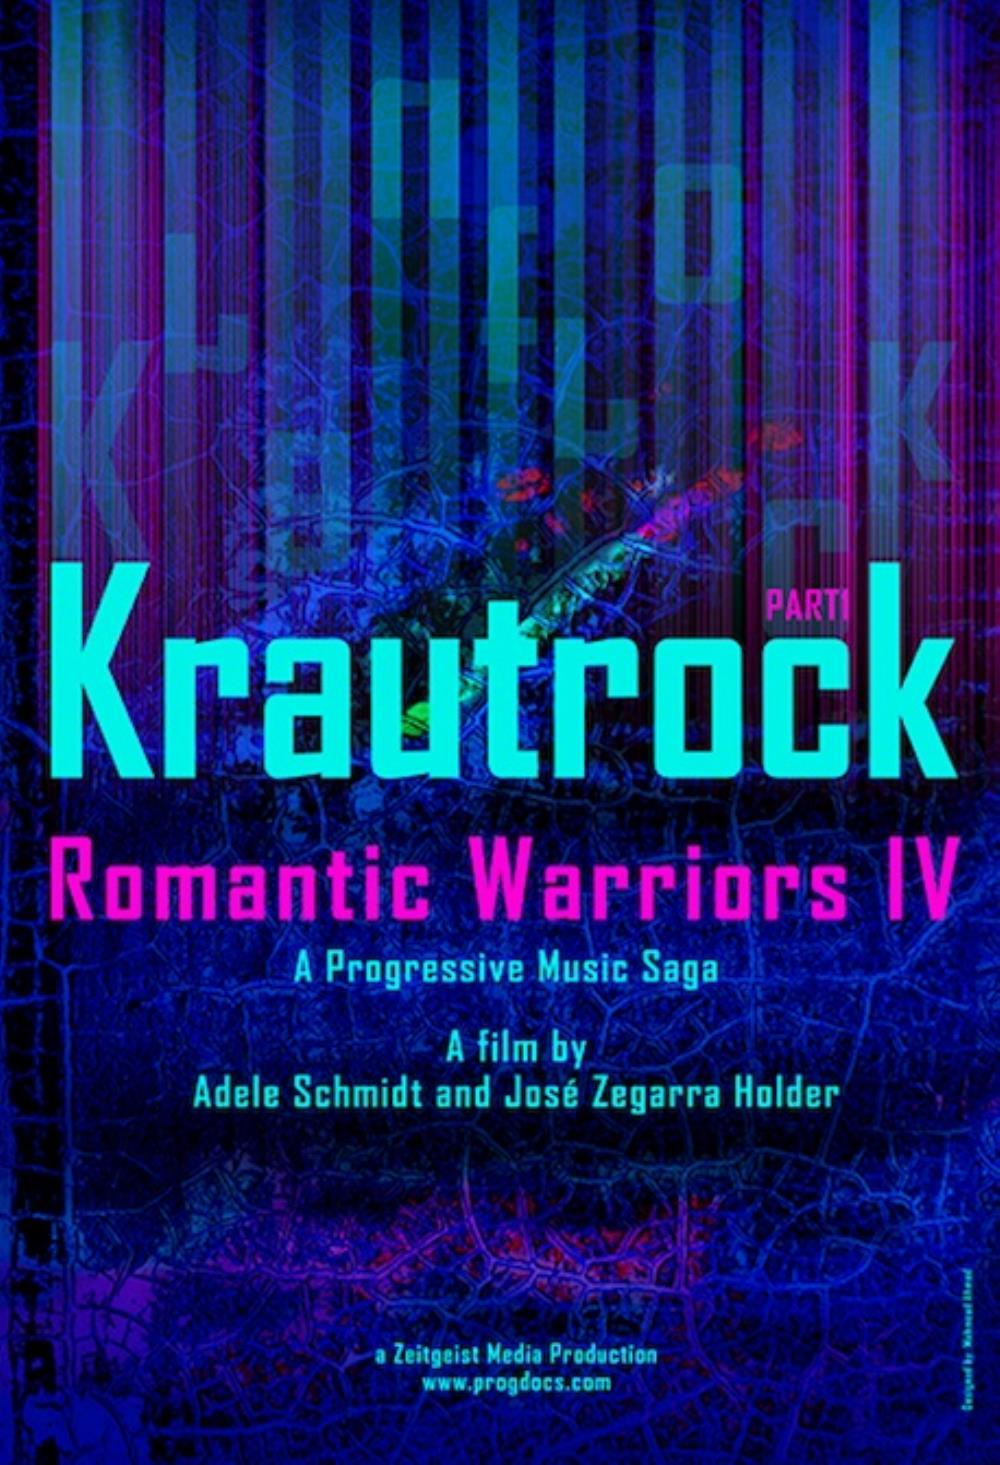 Romantic Warriors IV: Krautrock, Part I by VARIOUS ARTISTS (CONCEPT ALBUMS & THEMED COMPILATIONS) album cover